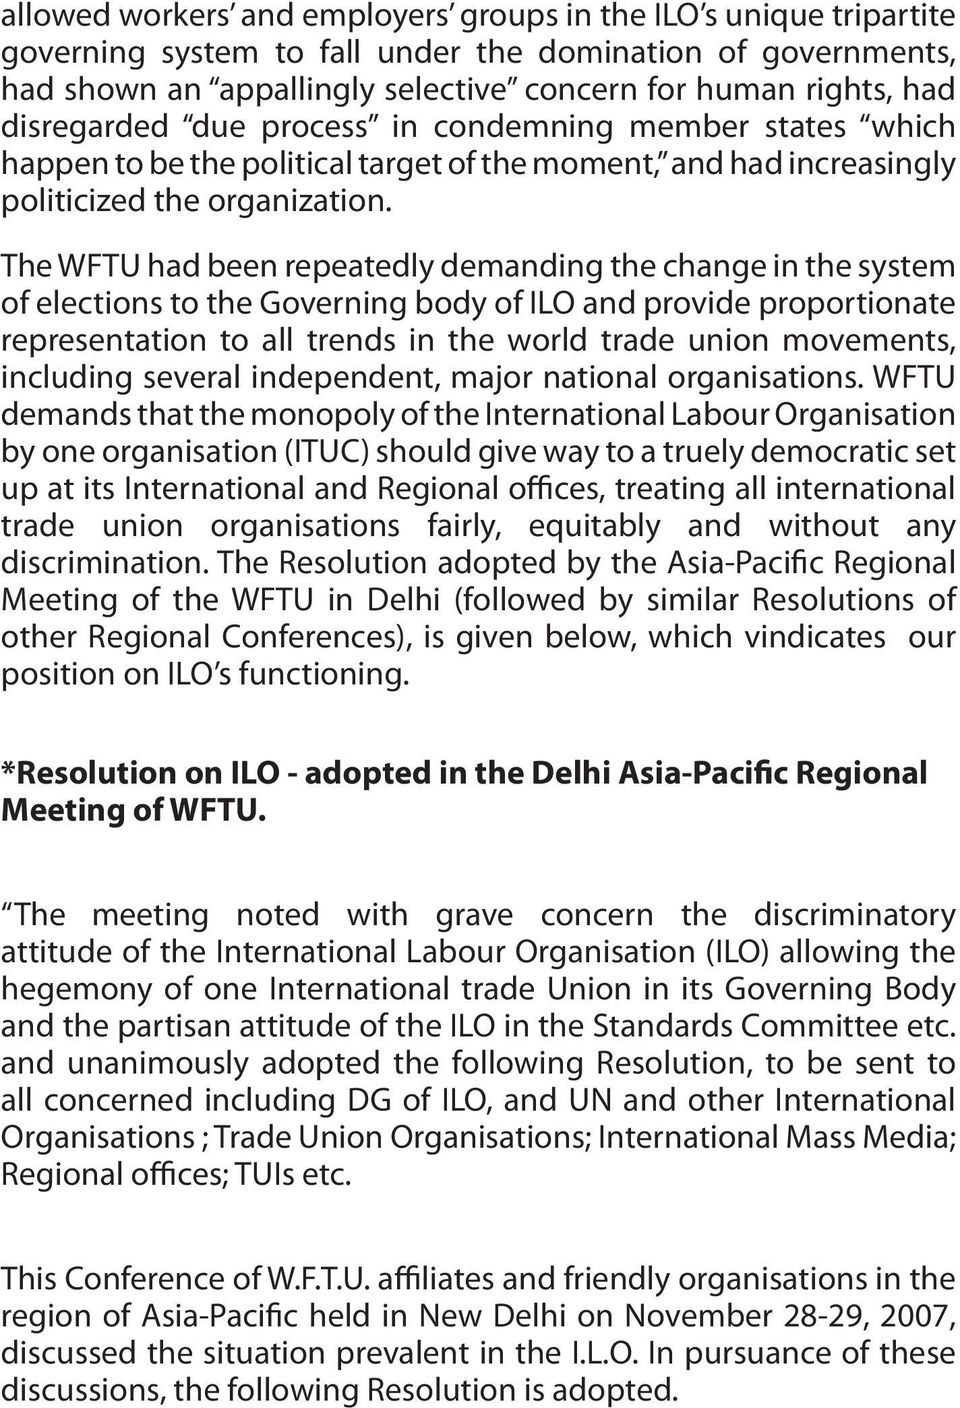 The WFTU had been repeatedly demanding the change in the system of elections to the Governing body of ILO and provide proportionate representation to all trends in the world trade union movements,